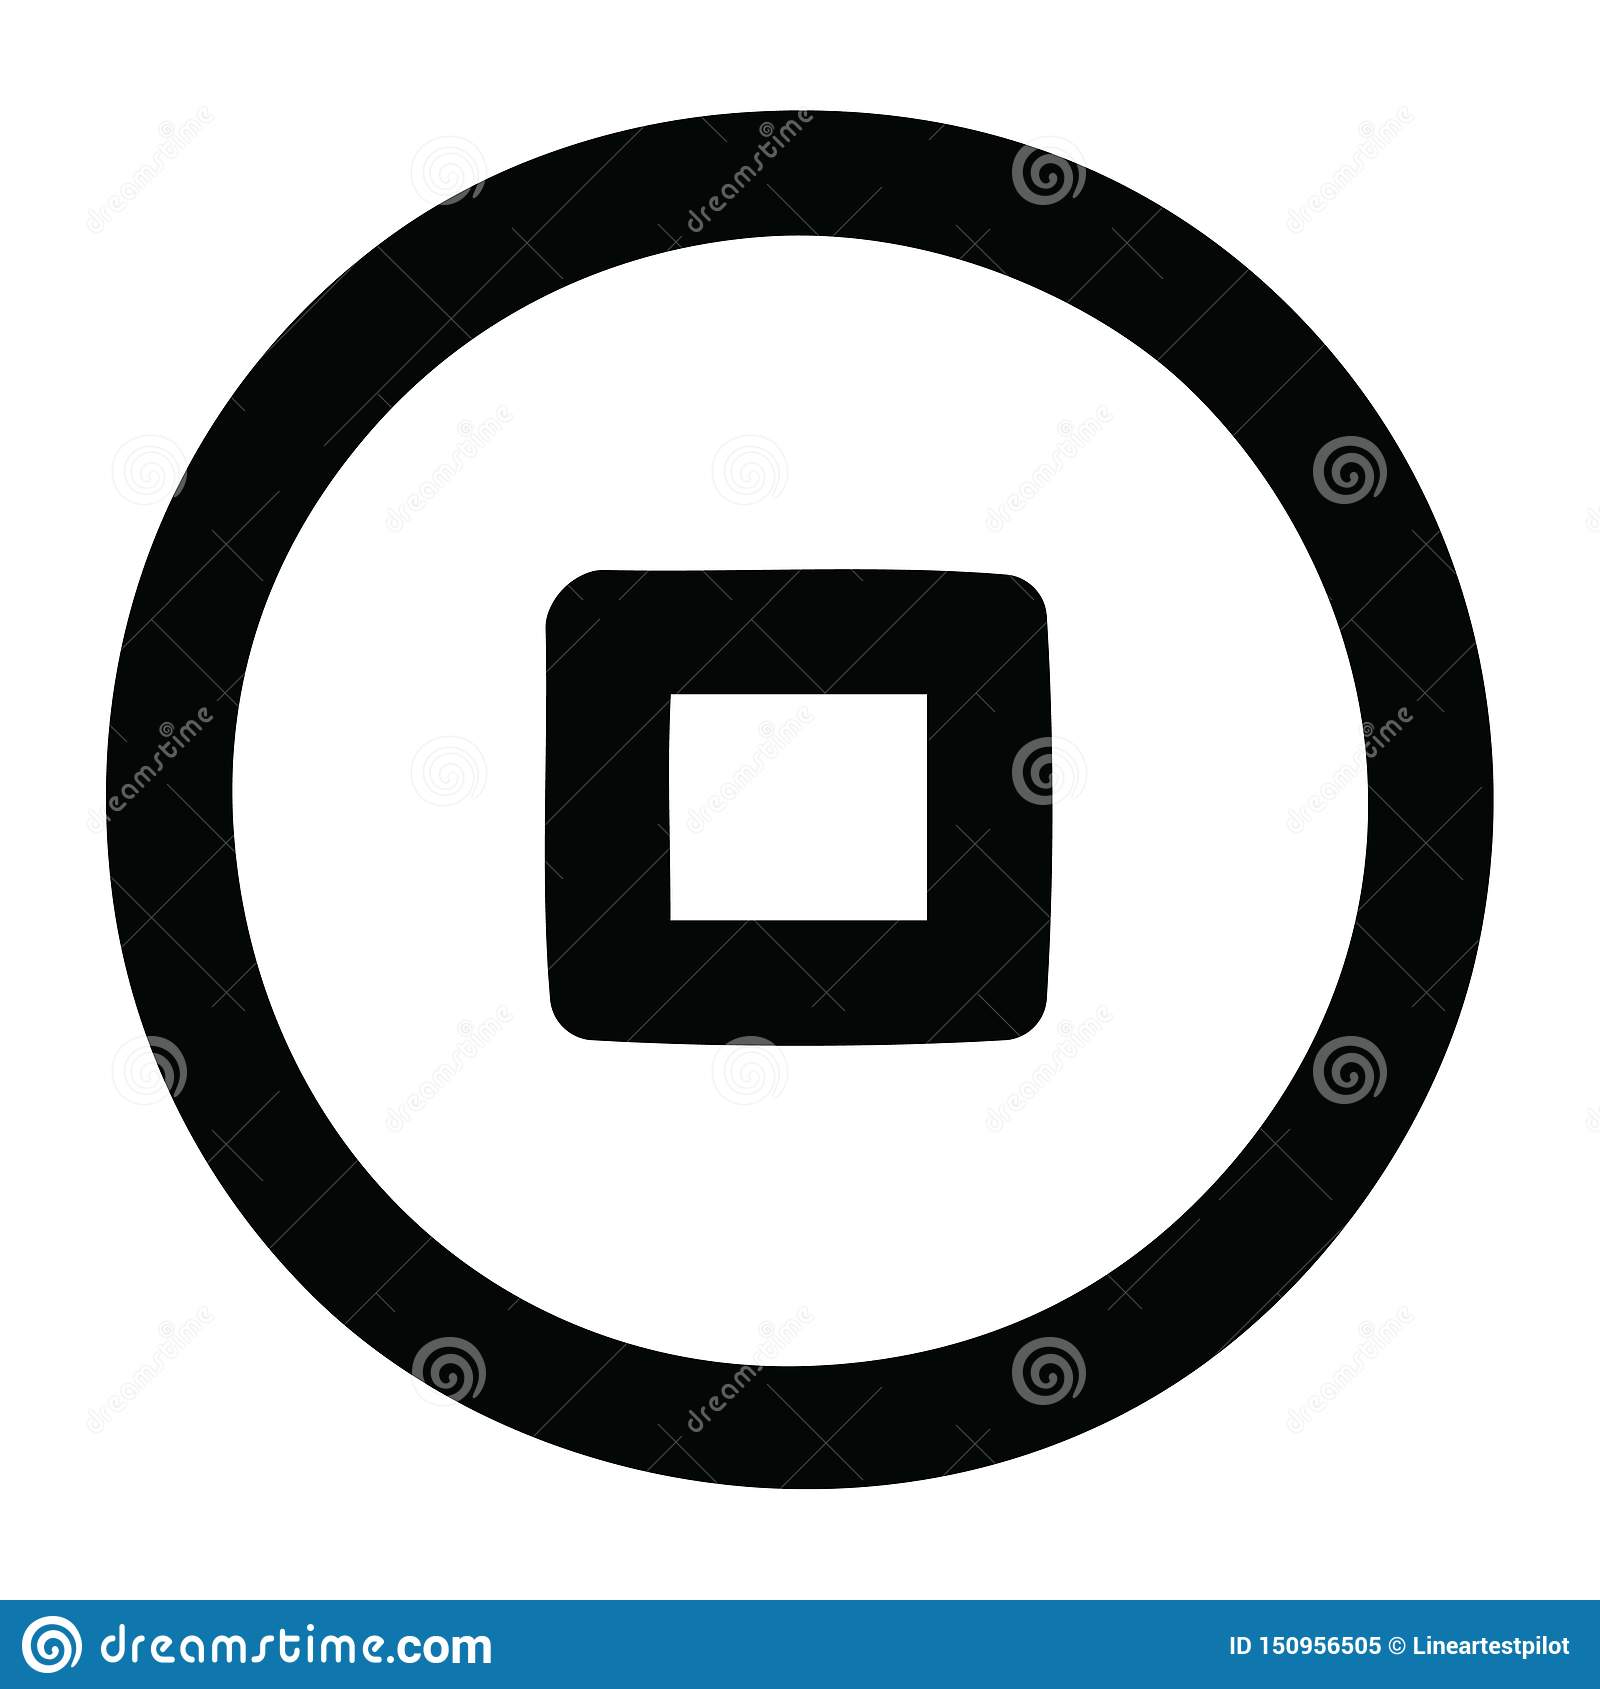 A Creative Stop Button Icon Stock Vector - Illustration of